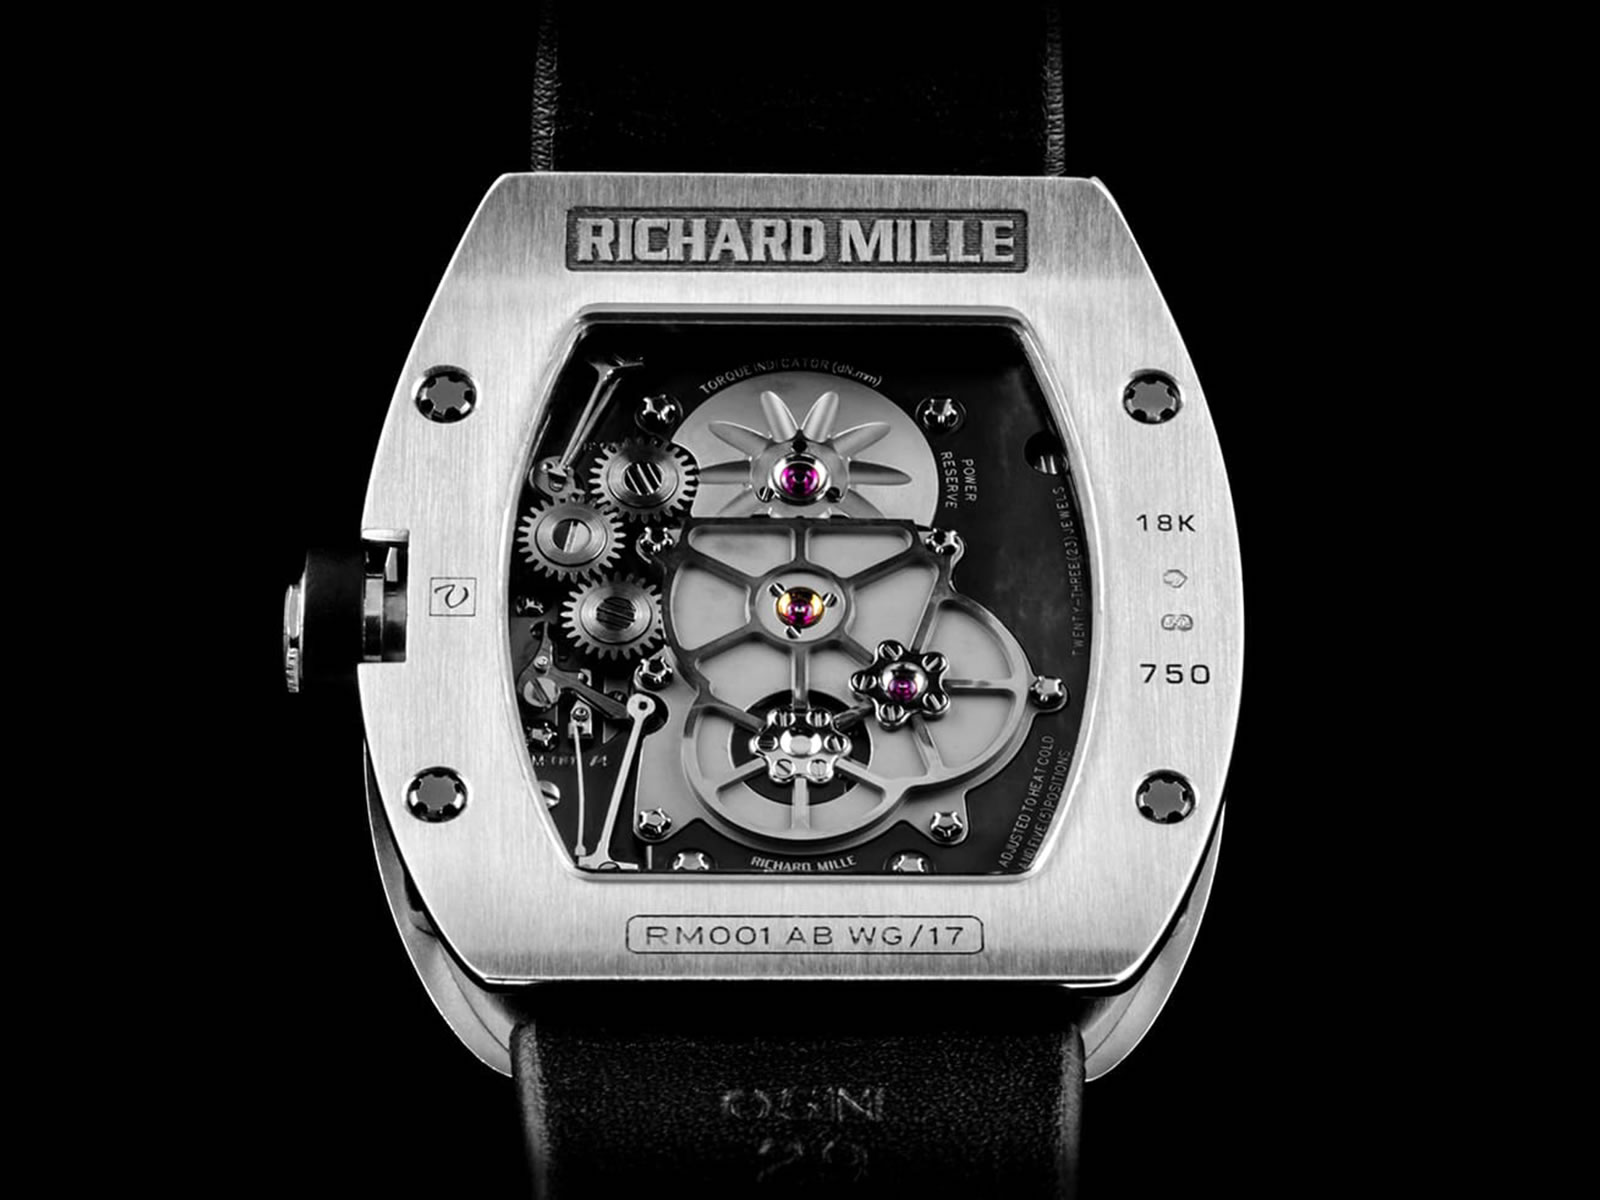 richard-mille-rm-001-tourbillon-3-.jpg